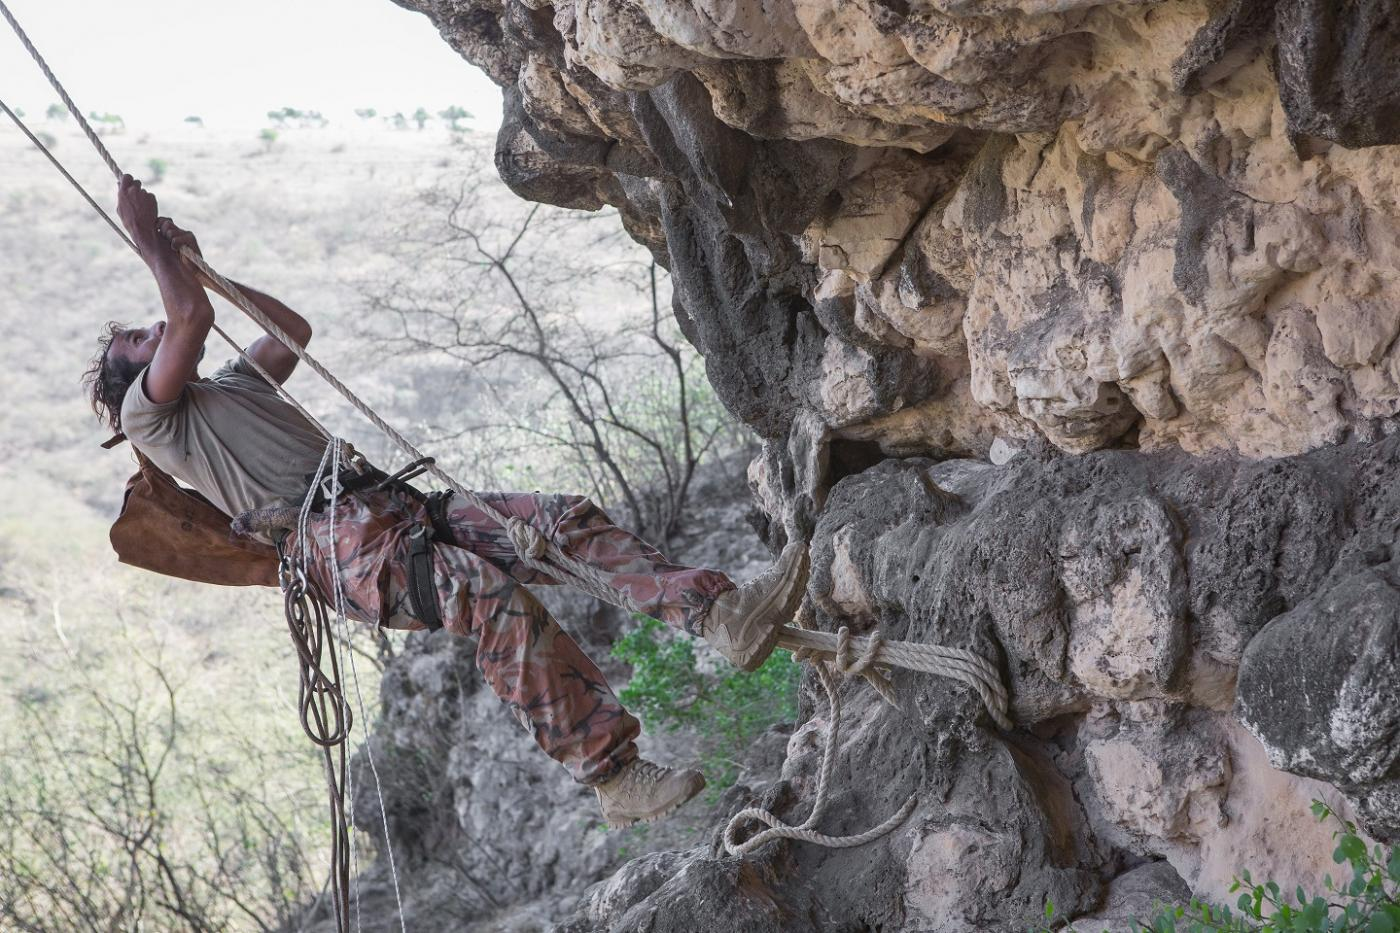 Honey hunter Mohammed Salem Guwas al-Kathery climbs a rocky spur to collect natural hives embedded in the cliff in Wadi Sheer (MEE/Sebastian Castelier)